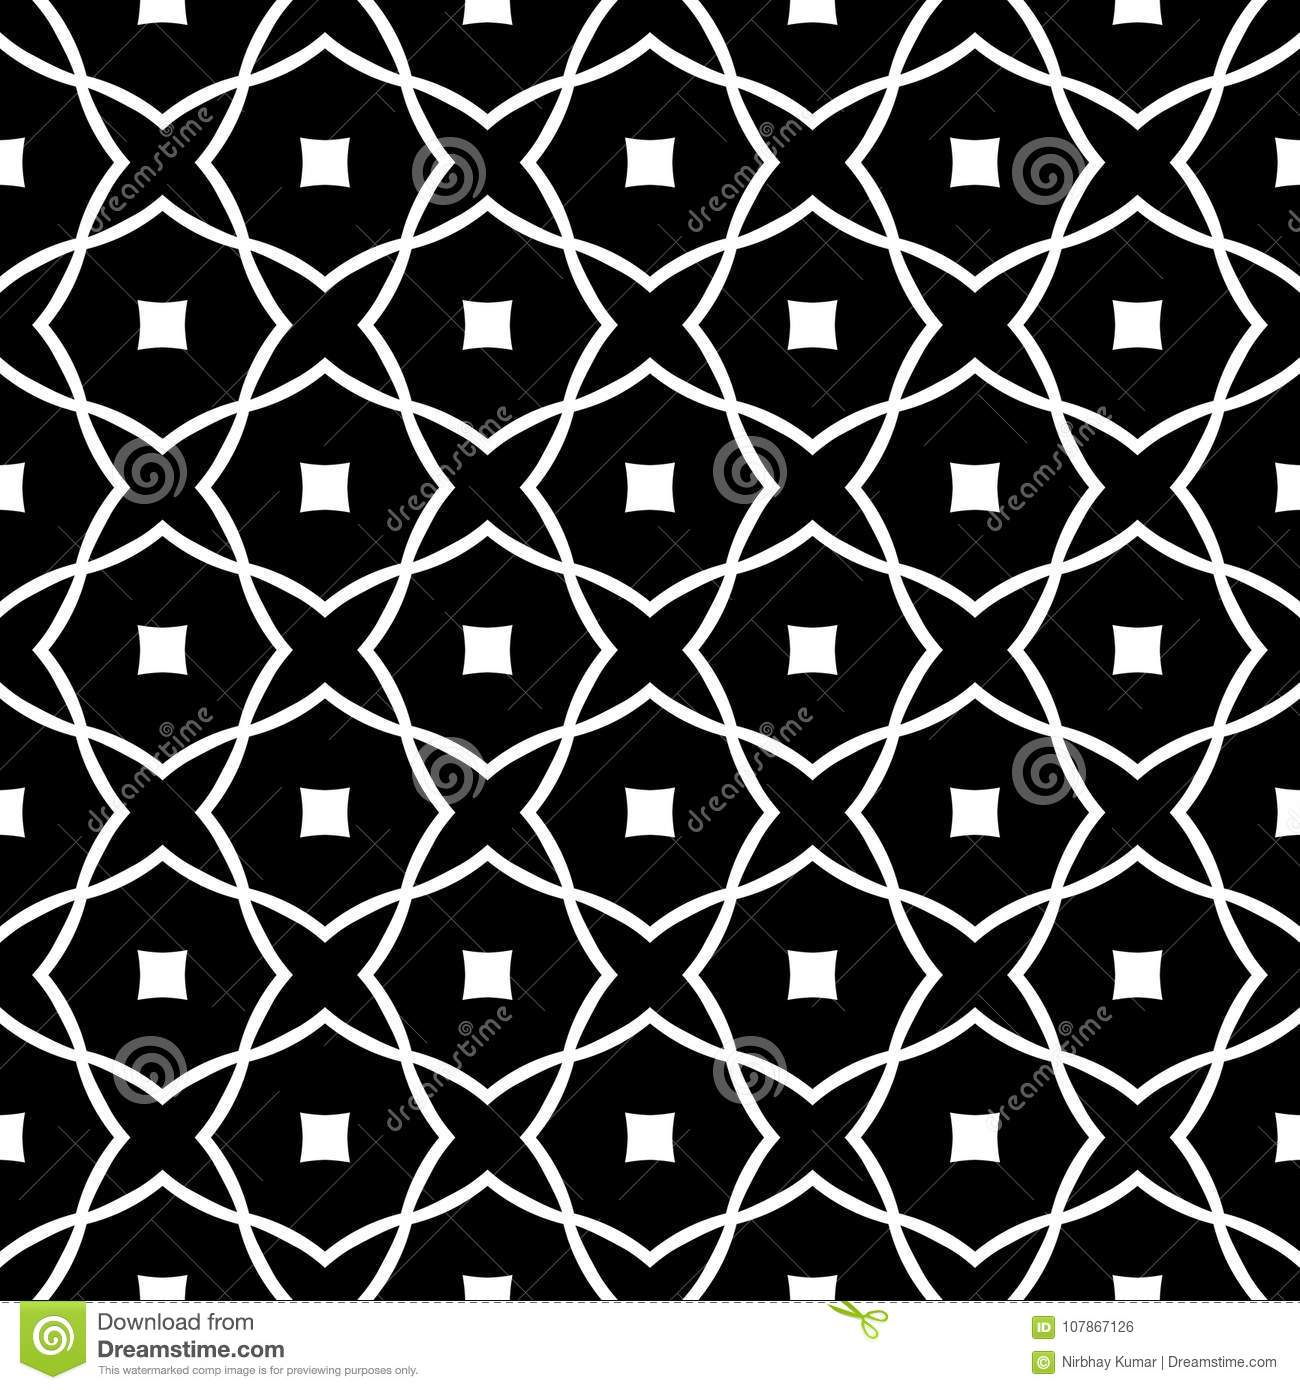 Great Wallpaper Home Screen Black And White - pattern-website-background-wallpaper-screen-sever-book-cover-printing-laser-cutting-designs-vector-black-white-107867126  Collection_182652.jpg